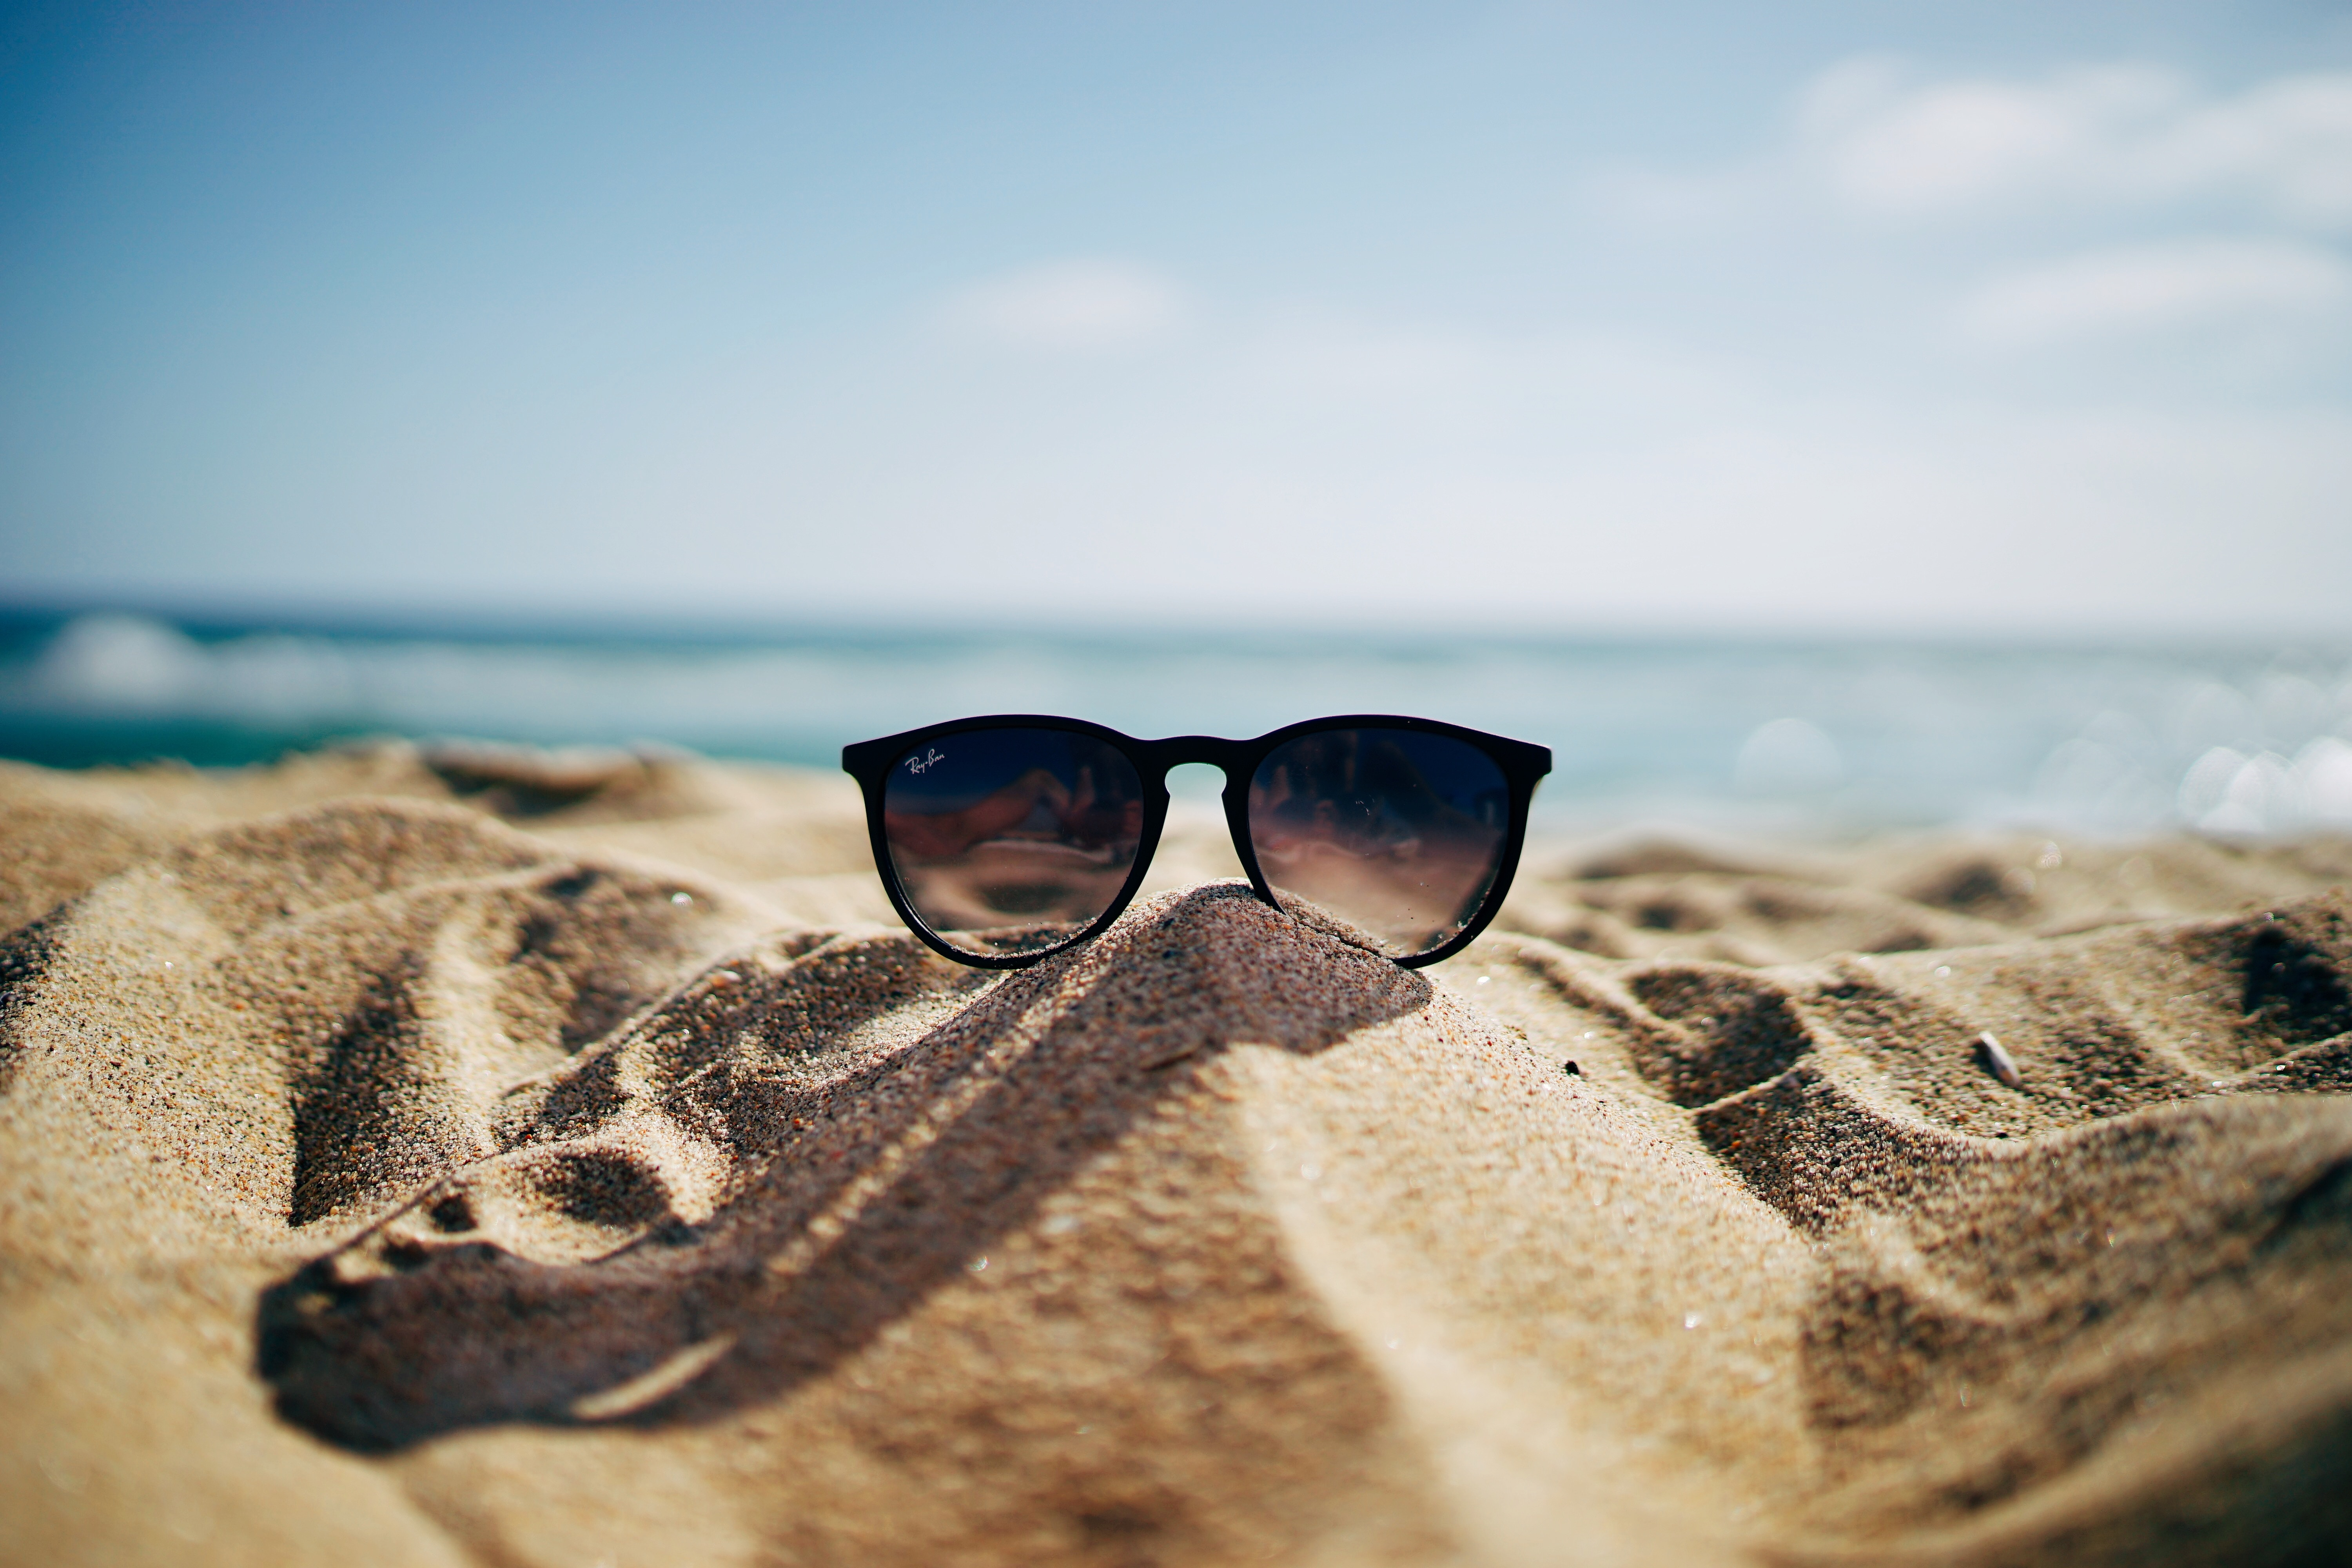 99500 download wallpaper Sea, Sand, Miscellanea, Miscellaneous, Glasses, Spectacles, Sunglasses screensavers and pictures for free